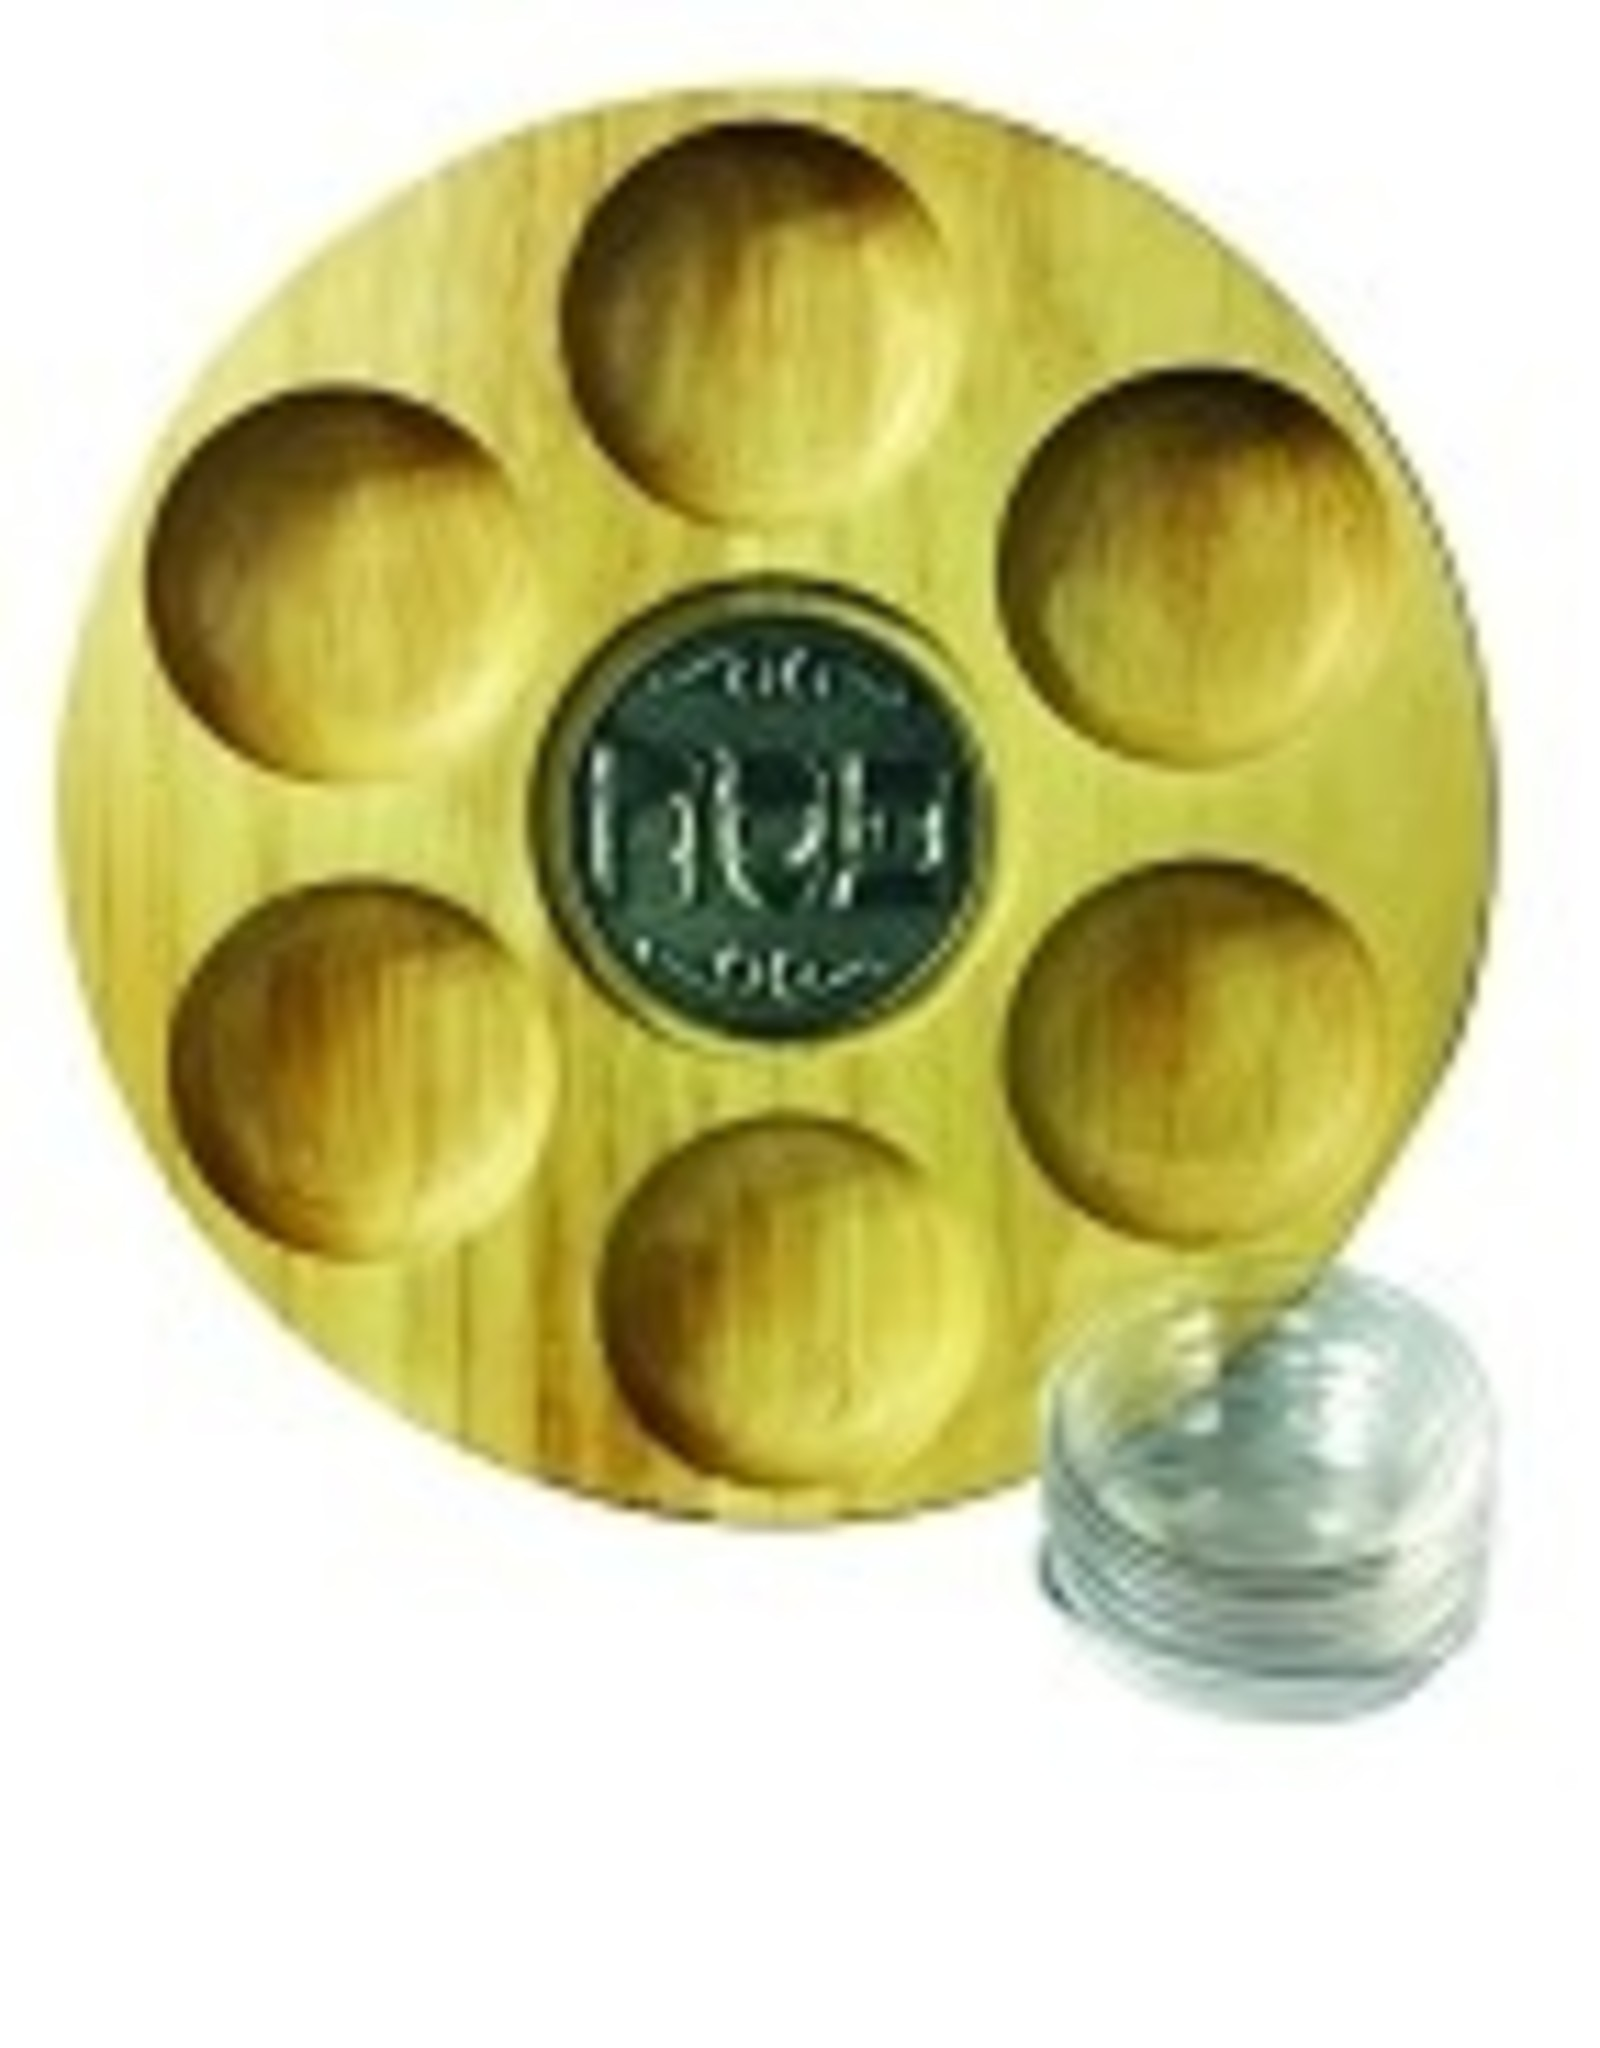 Seder plate, wood w/dishes